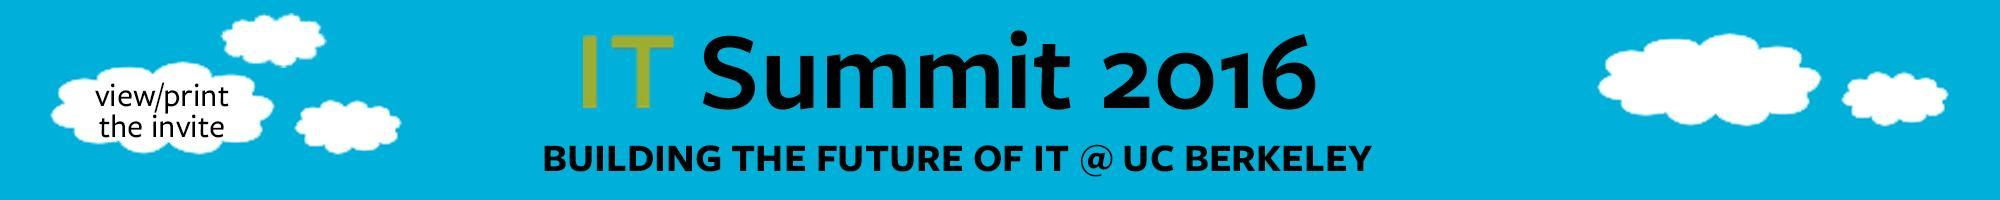 IT Summit header graphic of clouds